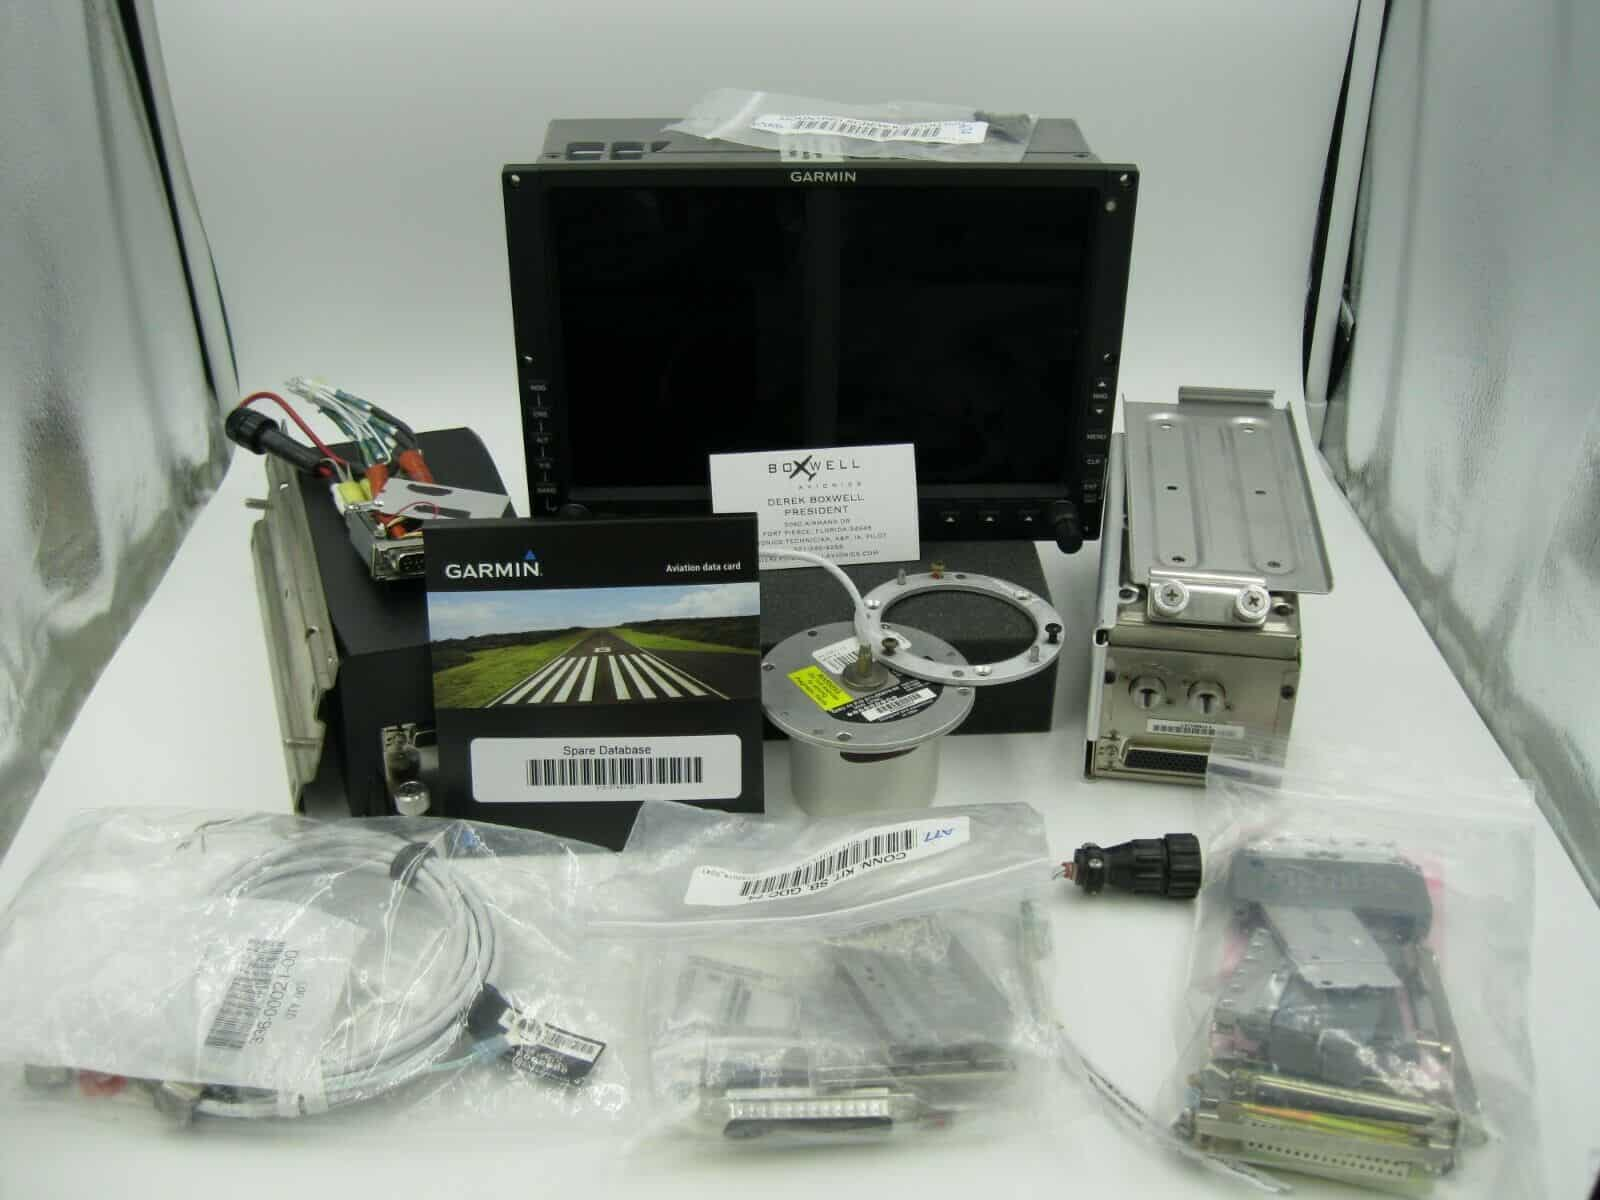 Complete G600 system